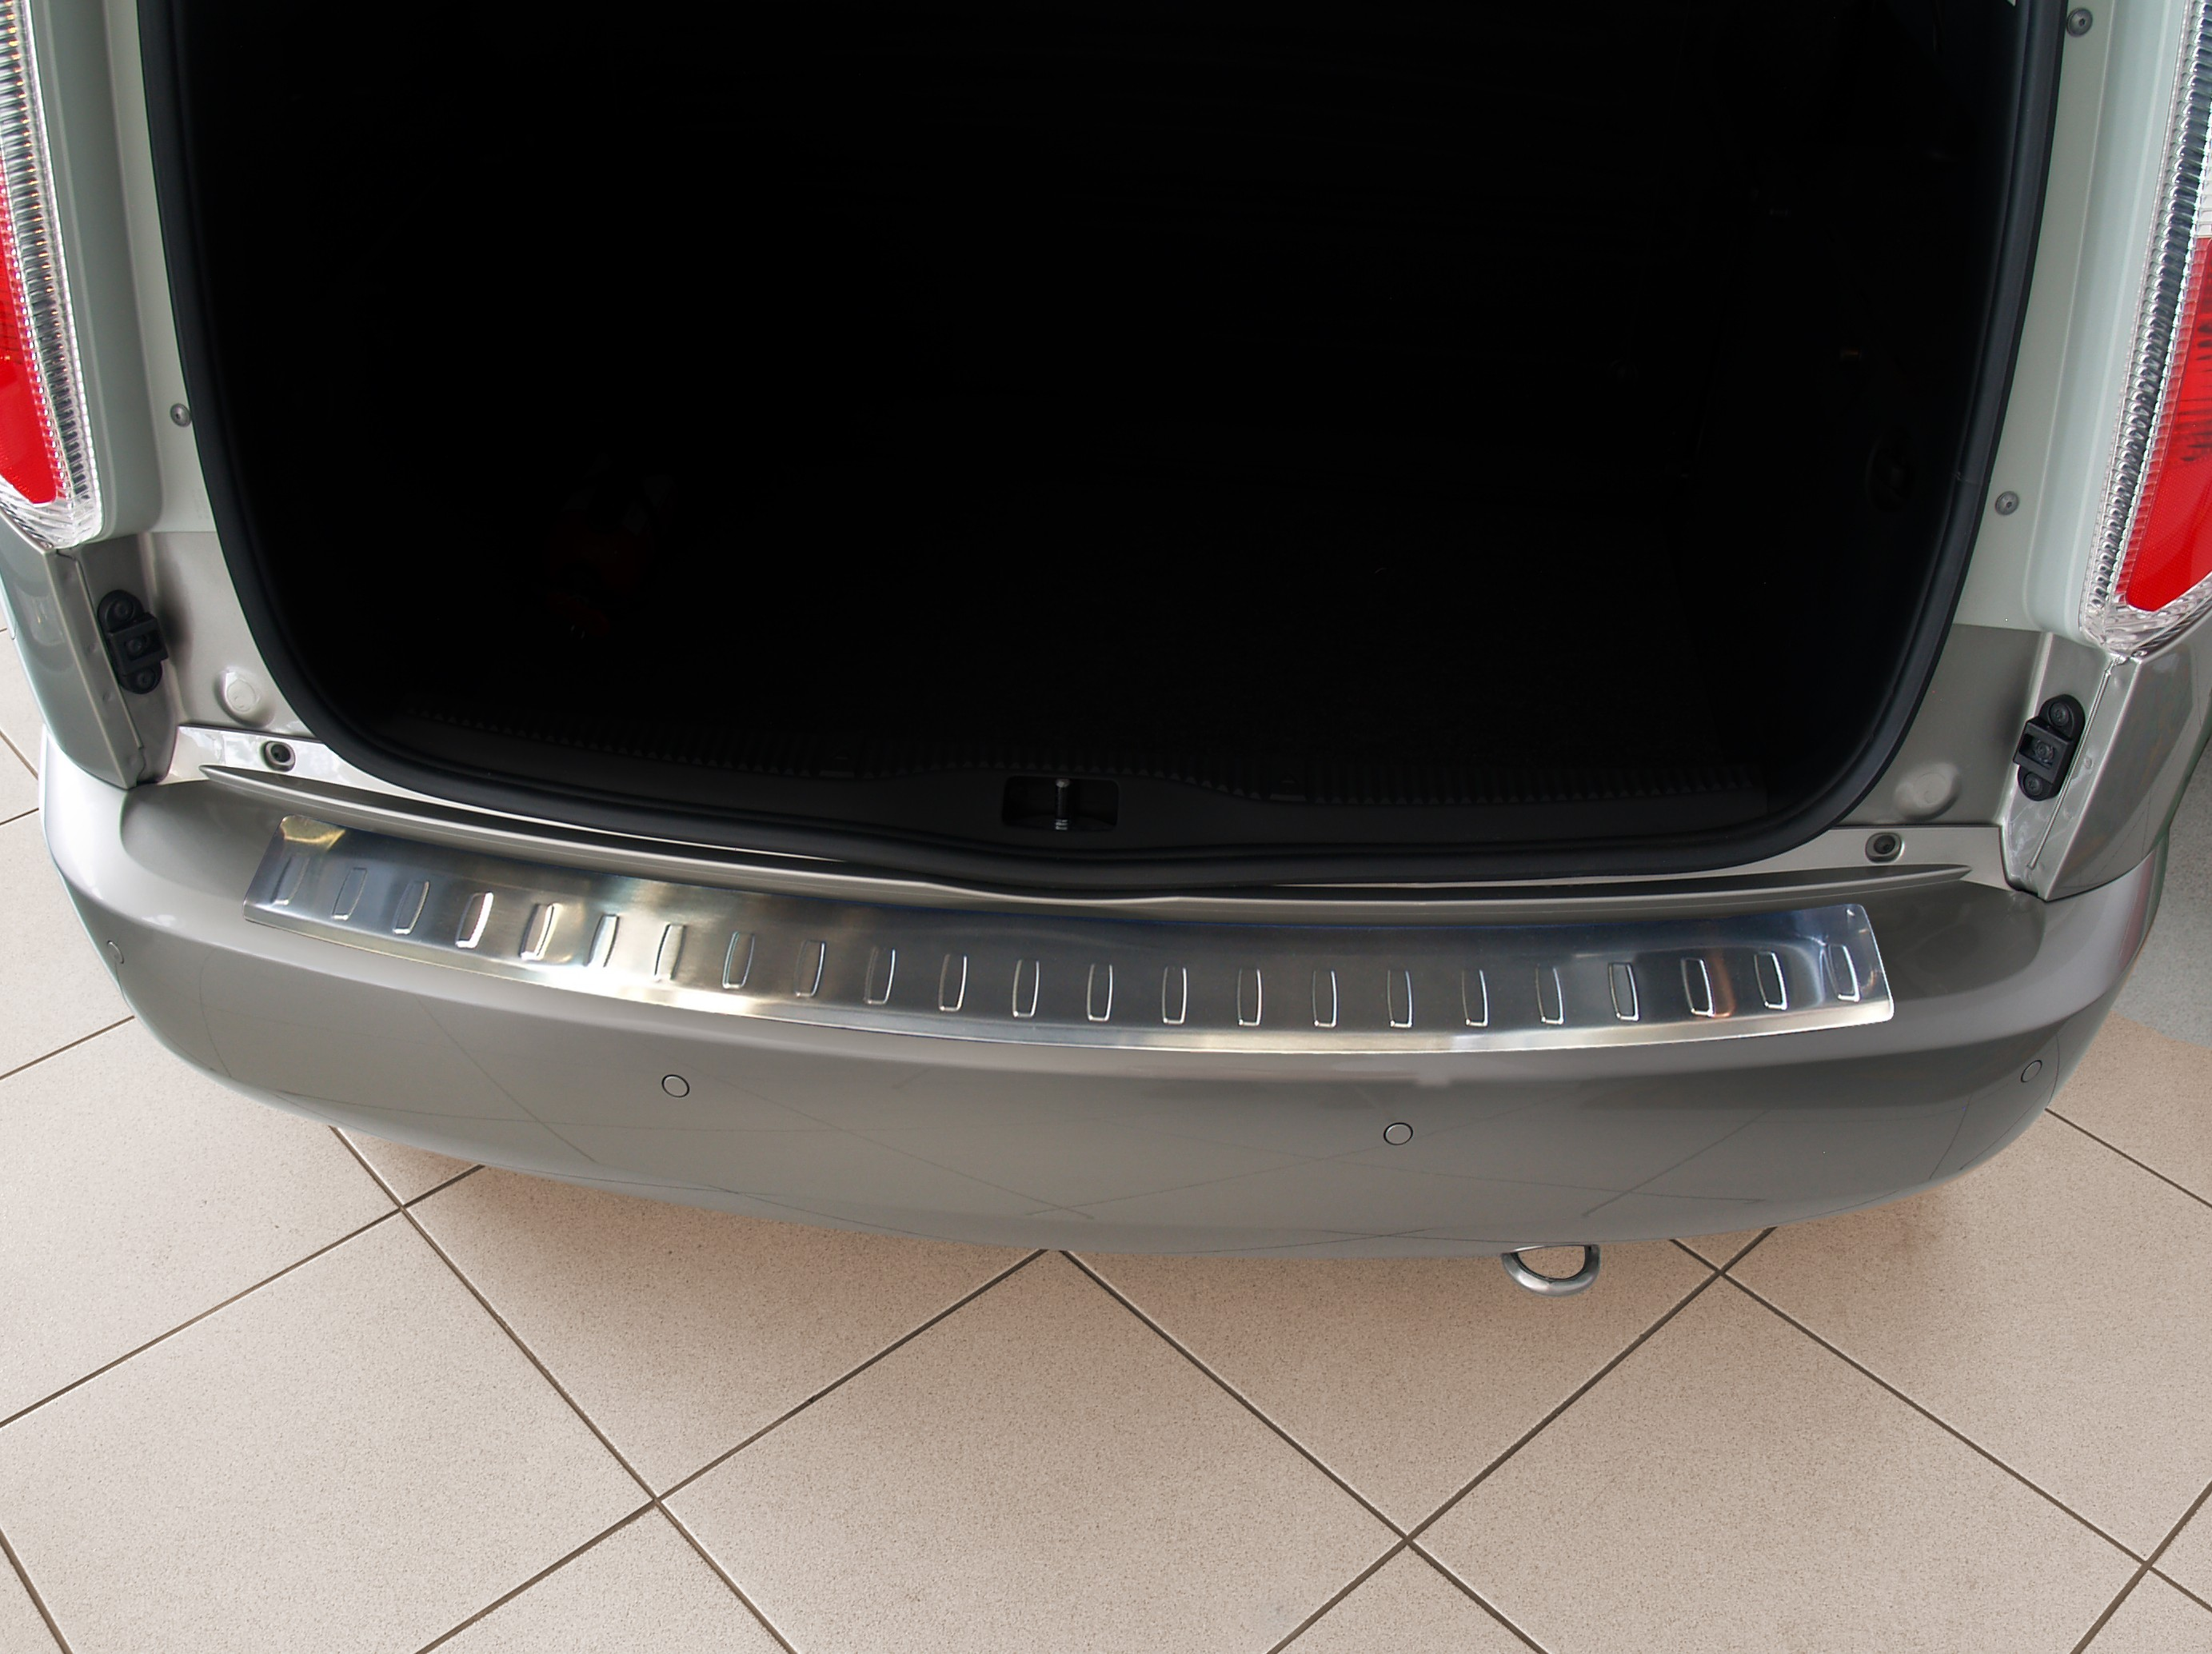 Skoda ROOMSTER 2 profiles ribs 2006-2012